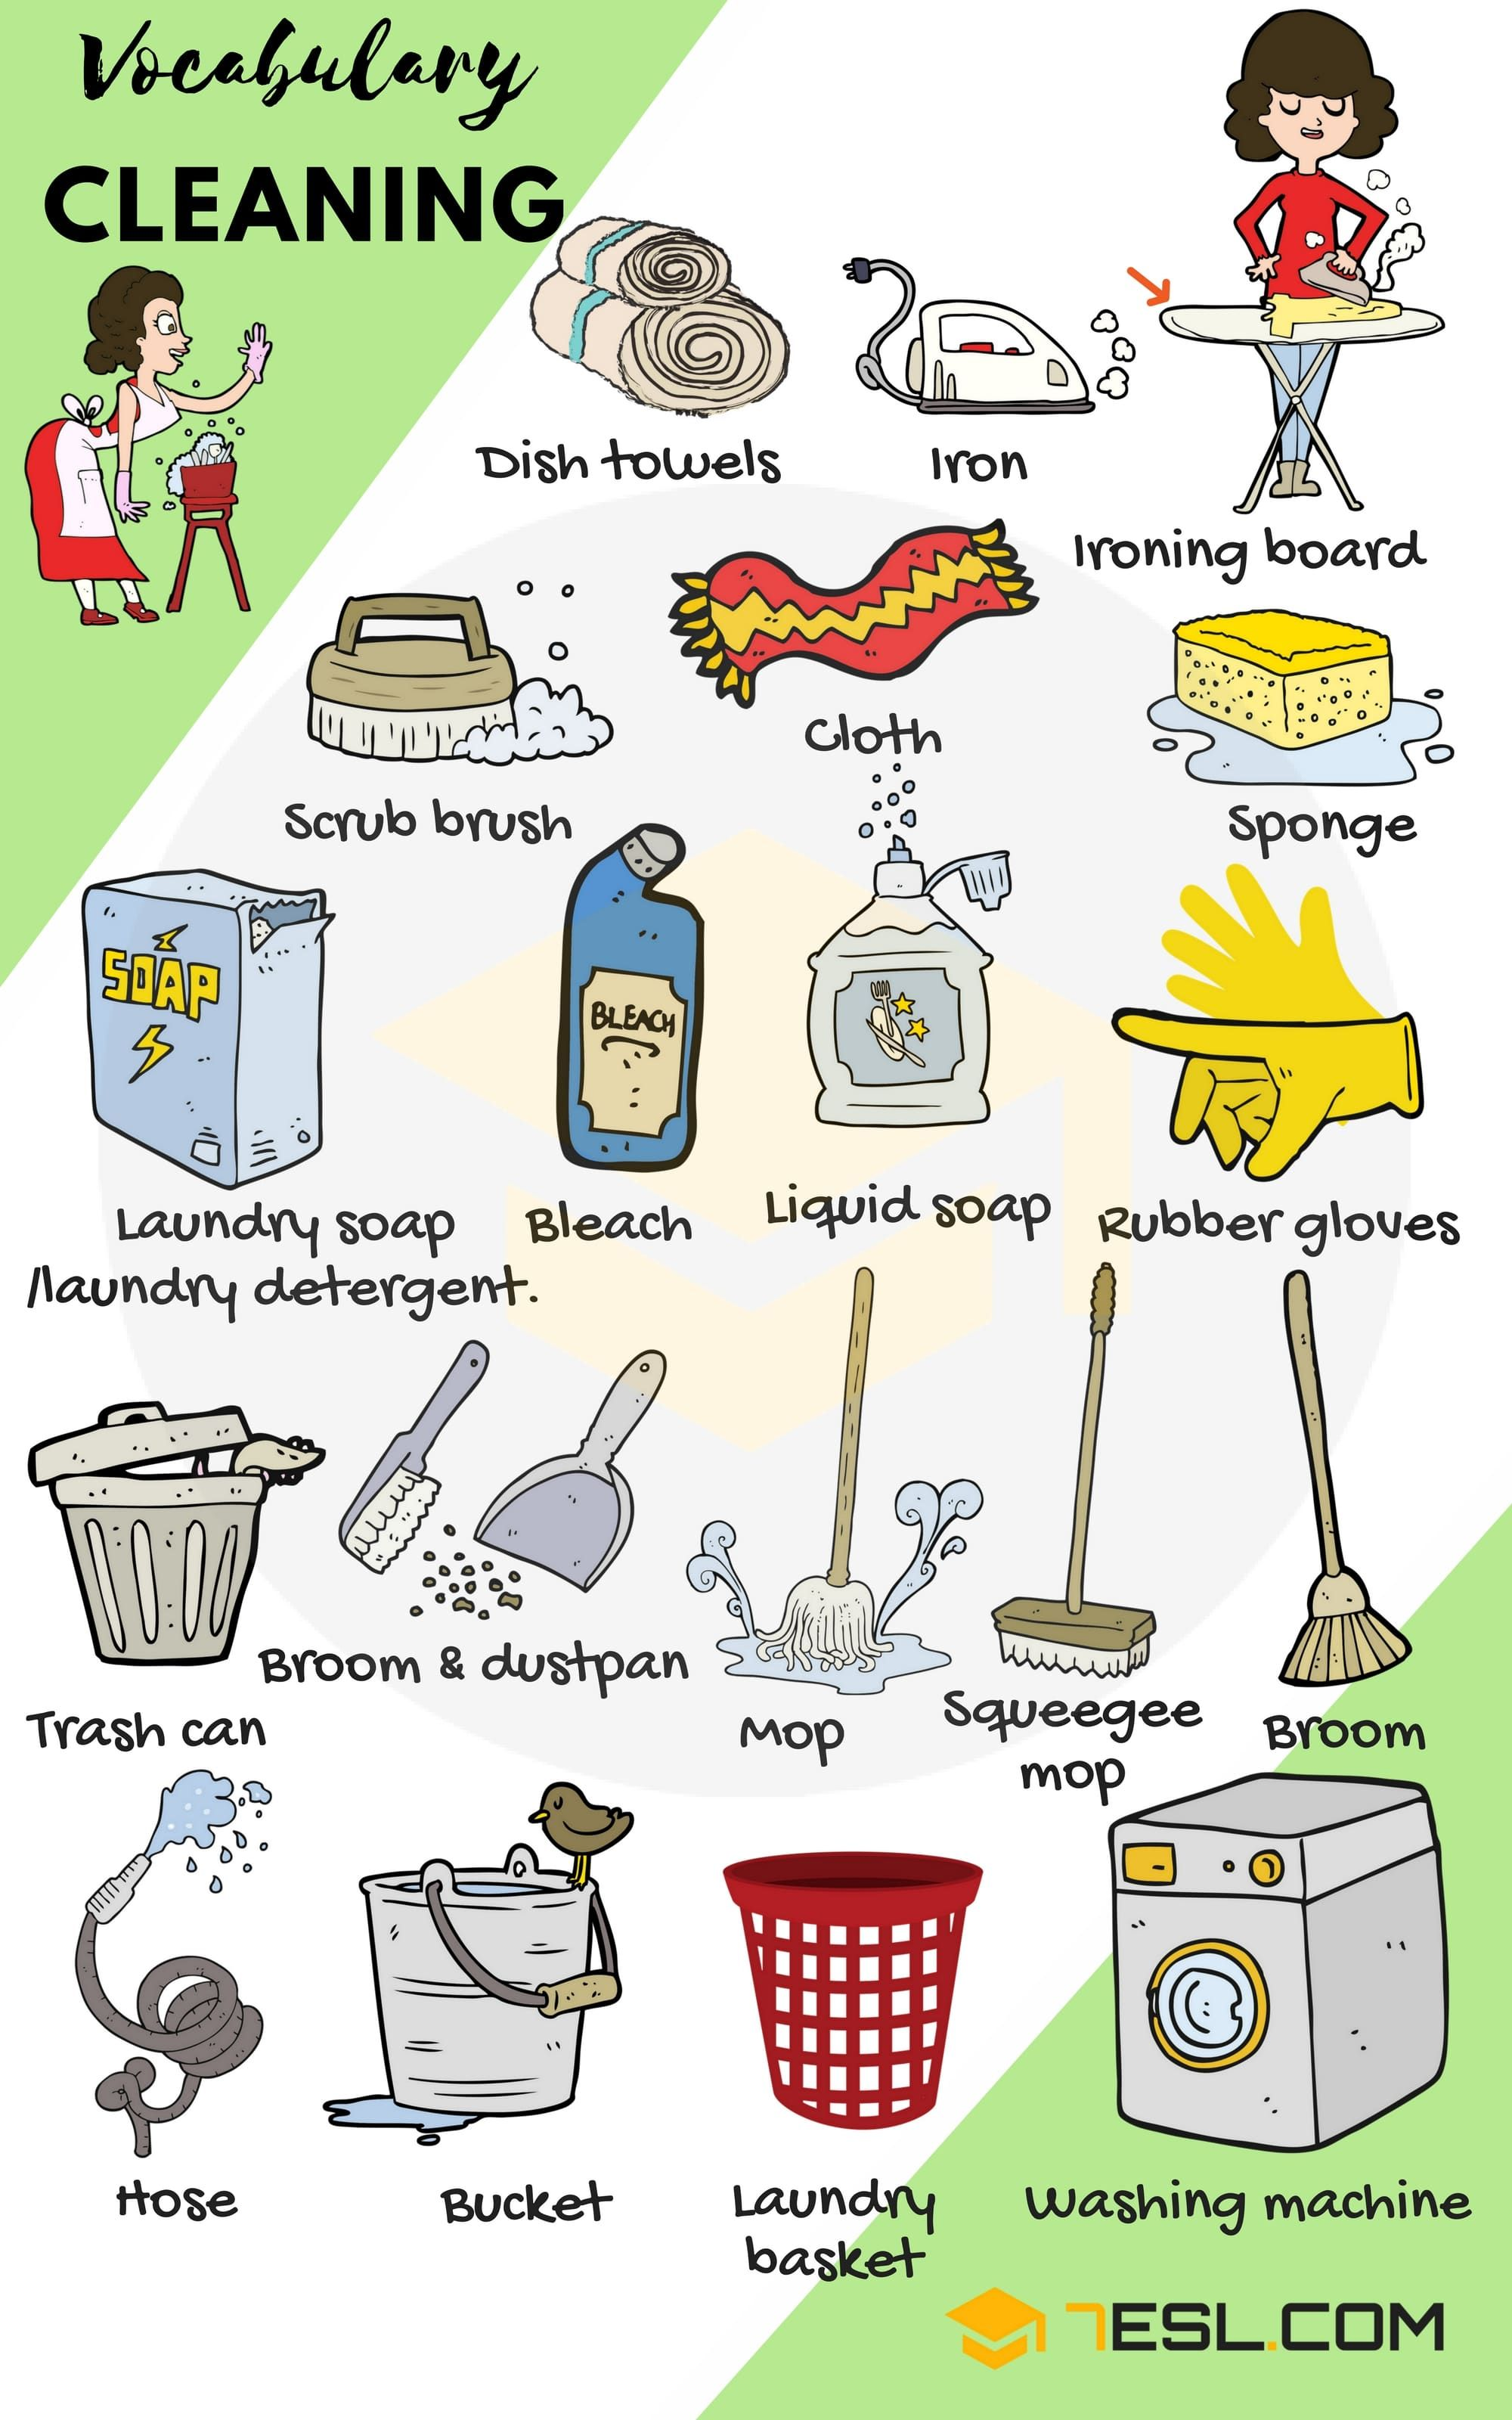 Cleaning Supplies List Of House Cleaning Amp Laundry Vocabulary